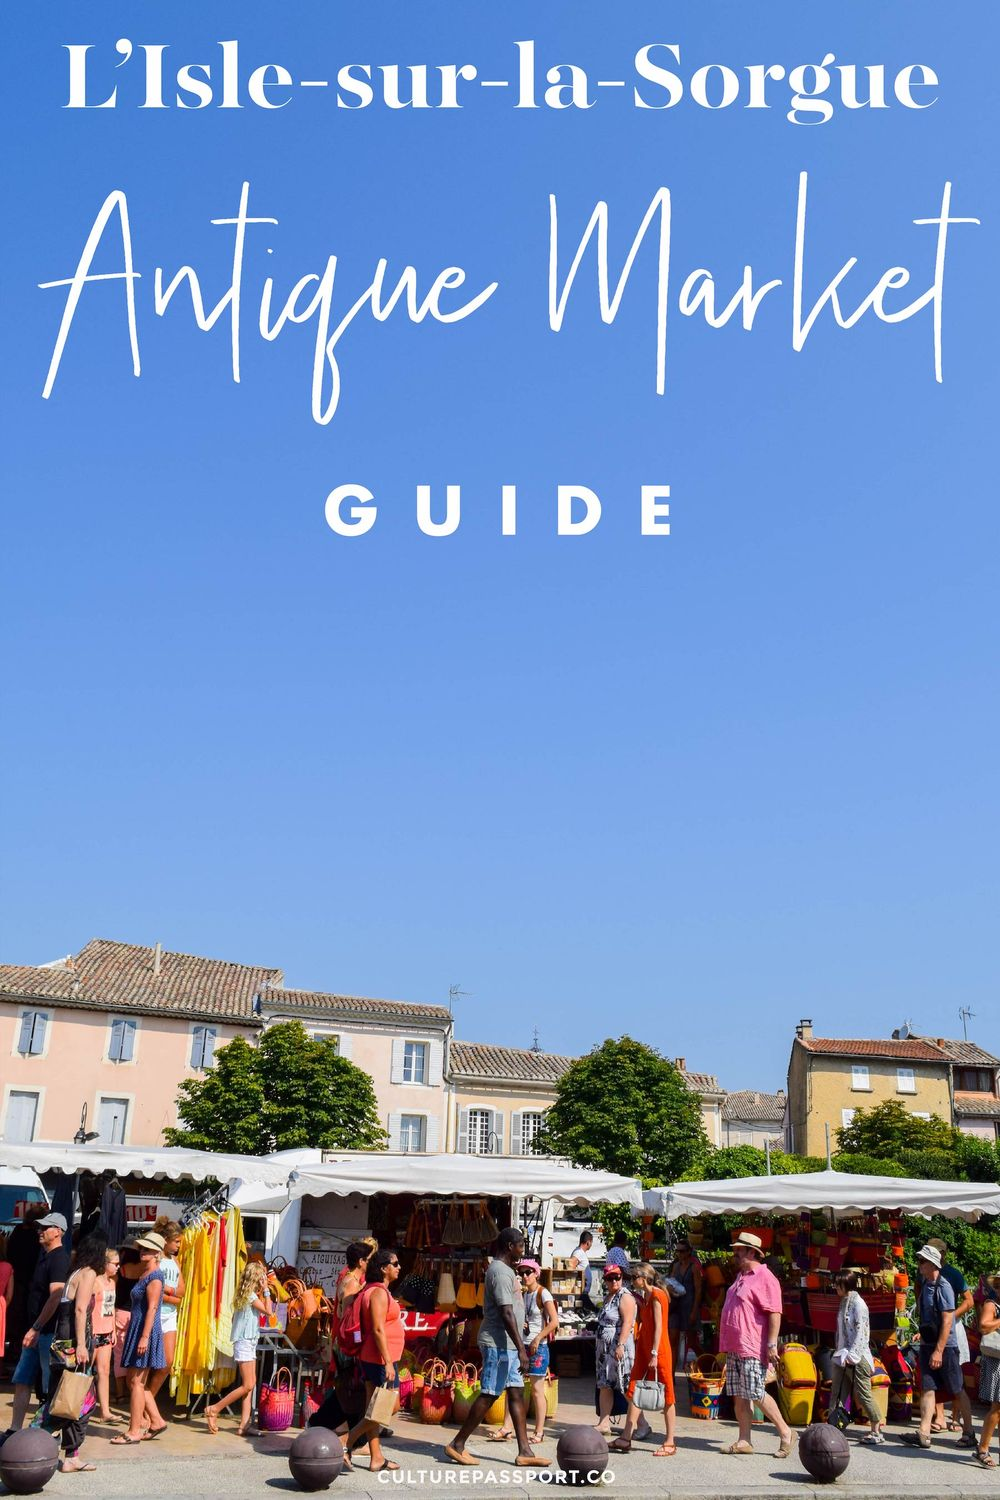 L'Isle Sur La Sorgue Antique Market Guide